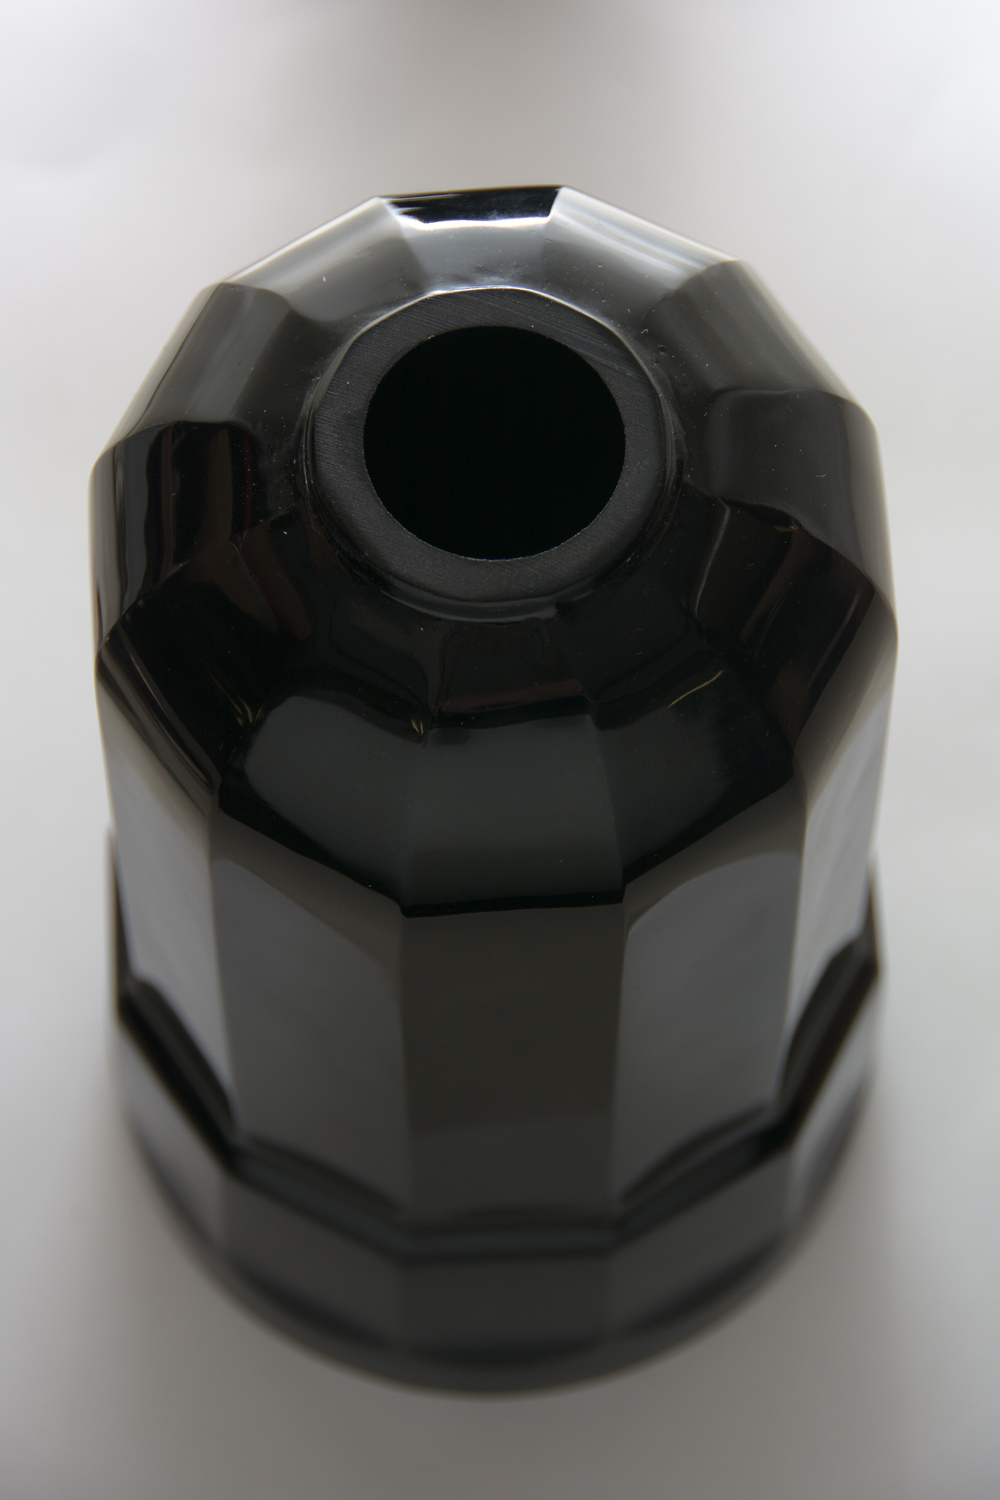 The black glass base